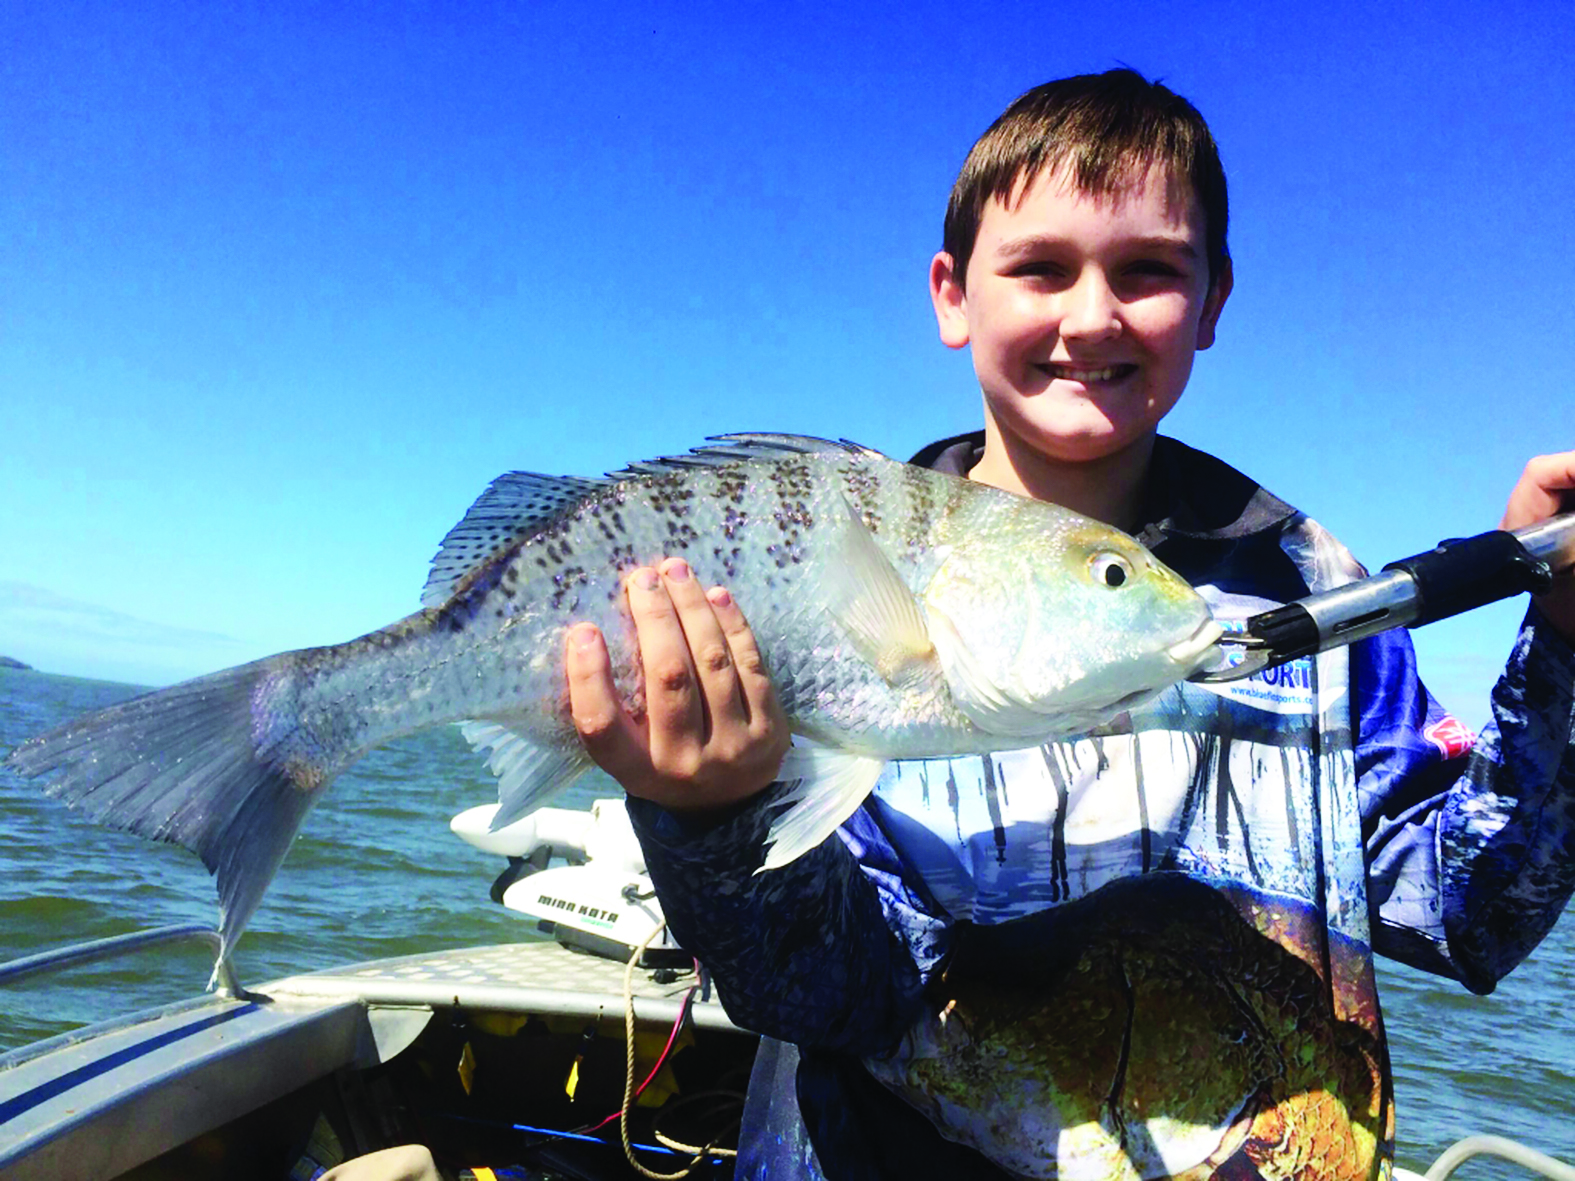 Noah Chapman with a PB grunter.